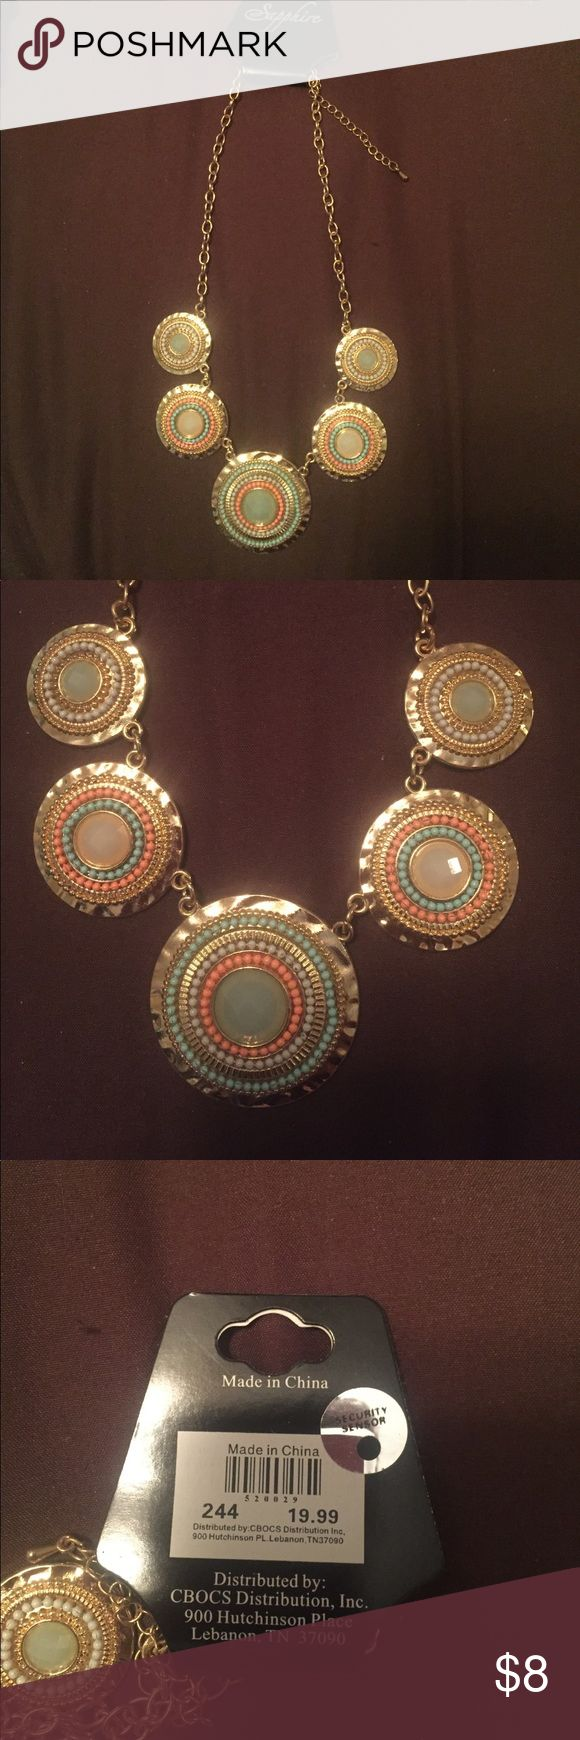 Gold bubble necklace new with tags Gold bubble neck lace with coral and mint green accents - new with  tags sapphire Jewelry Necklaces